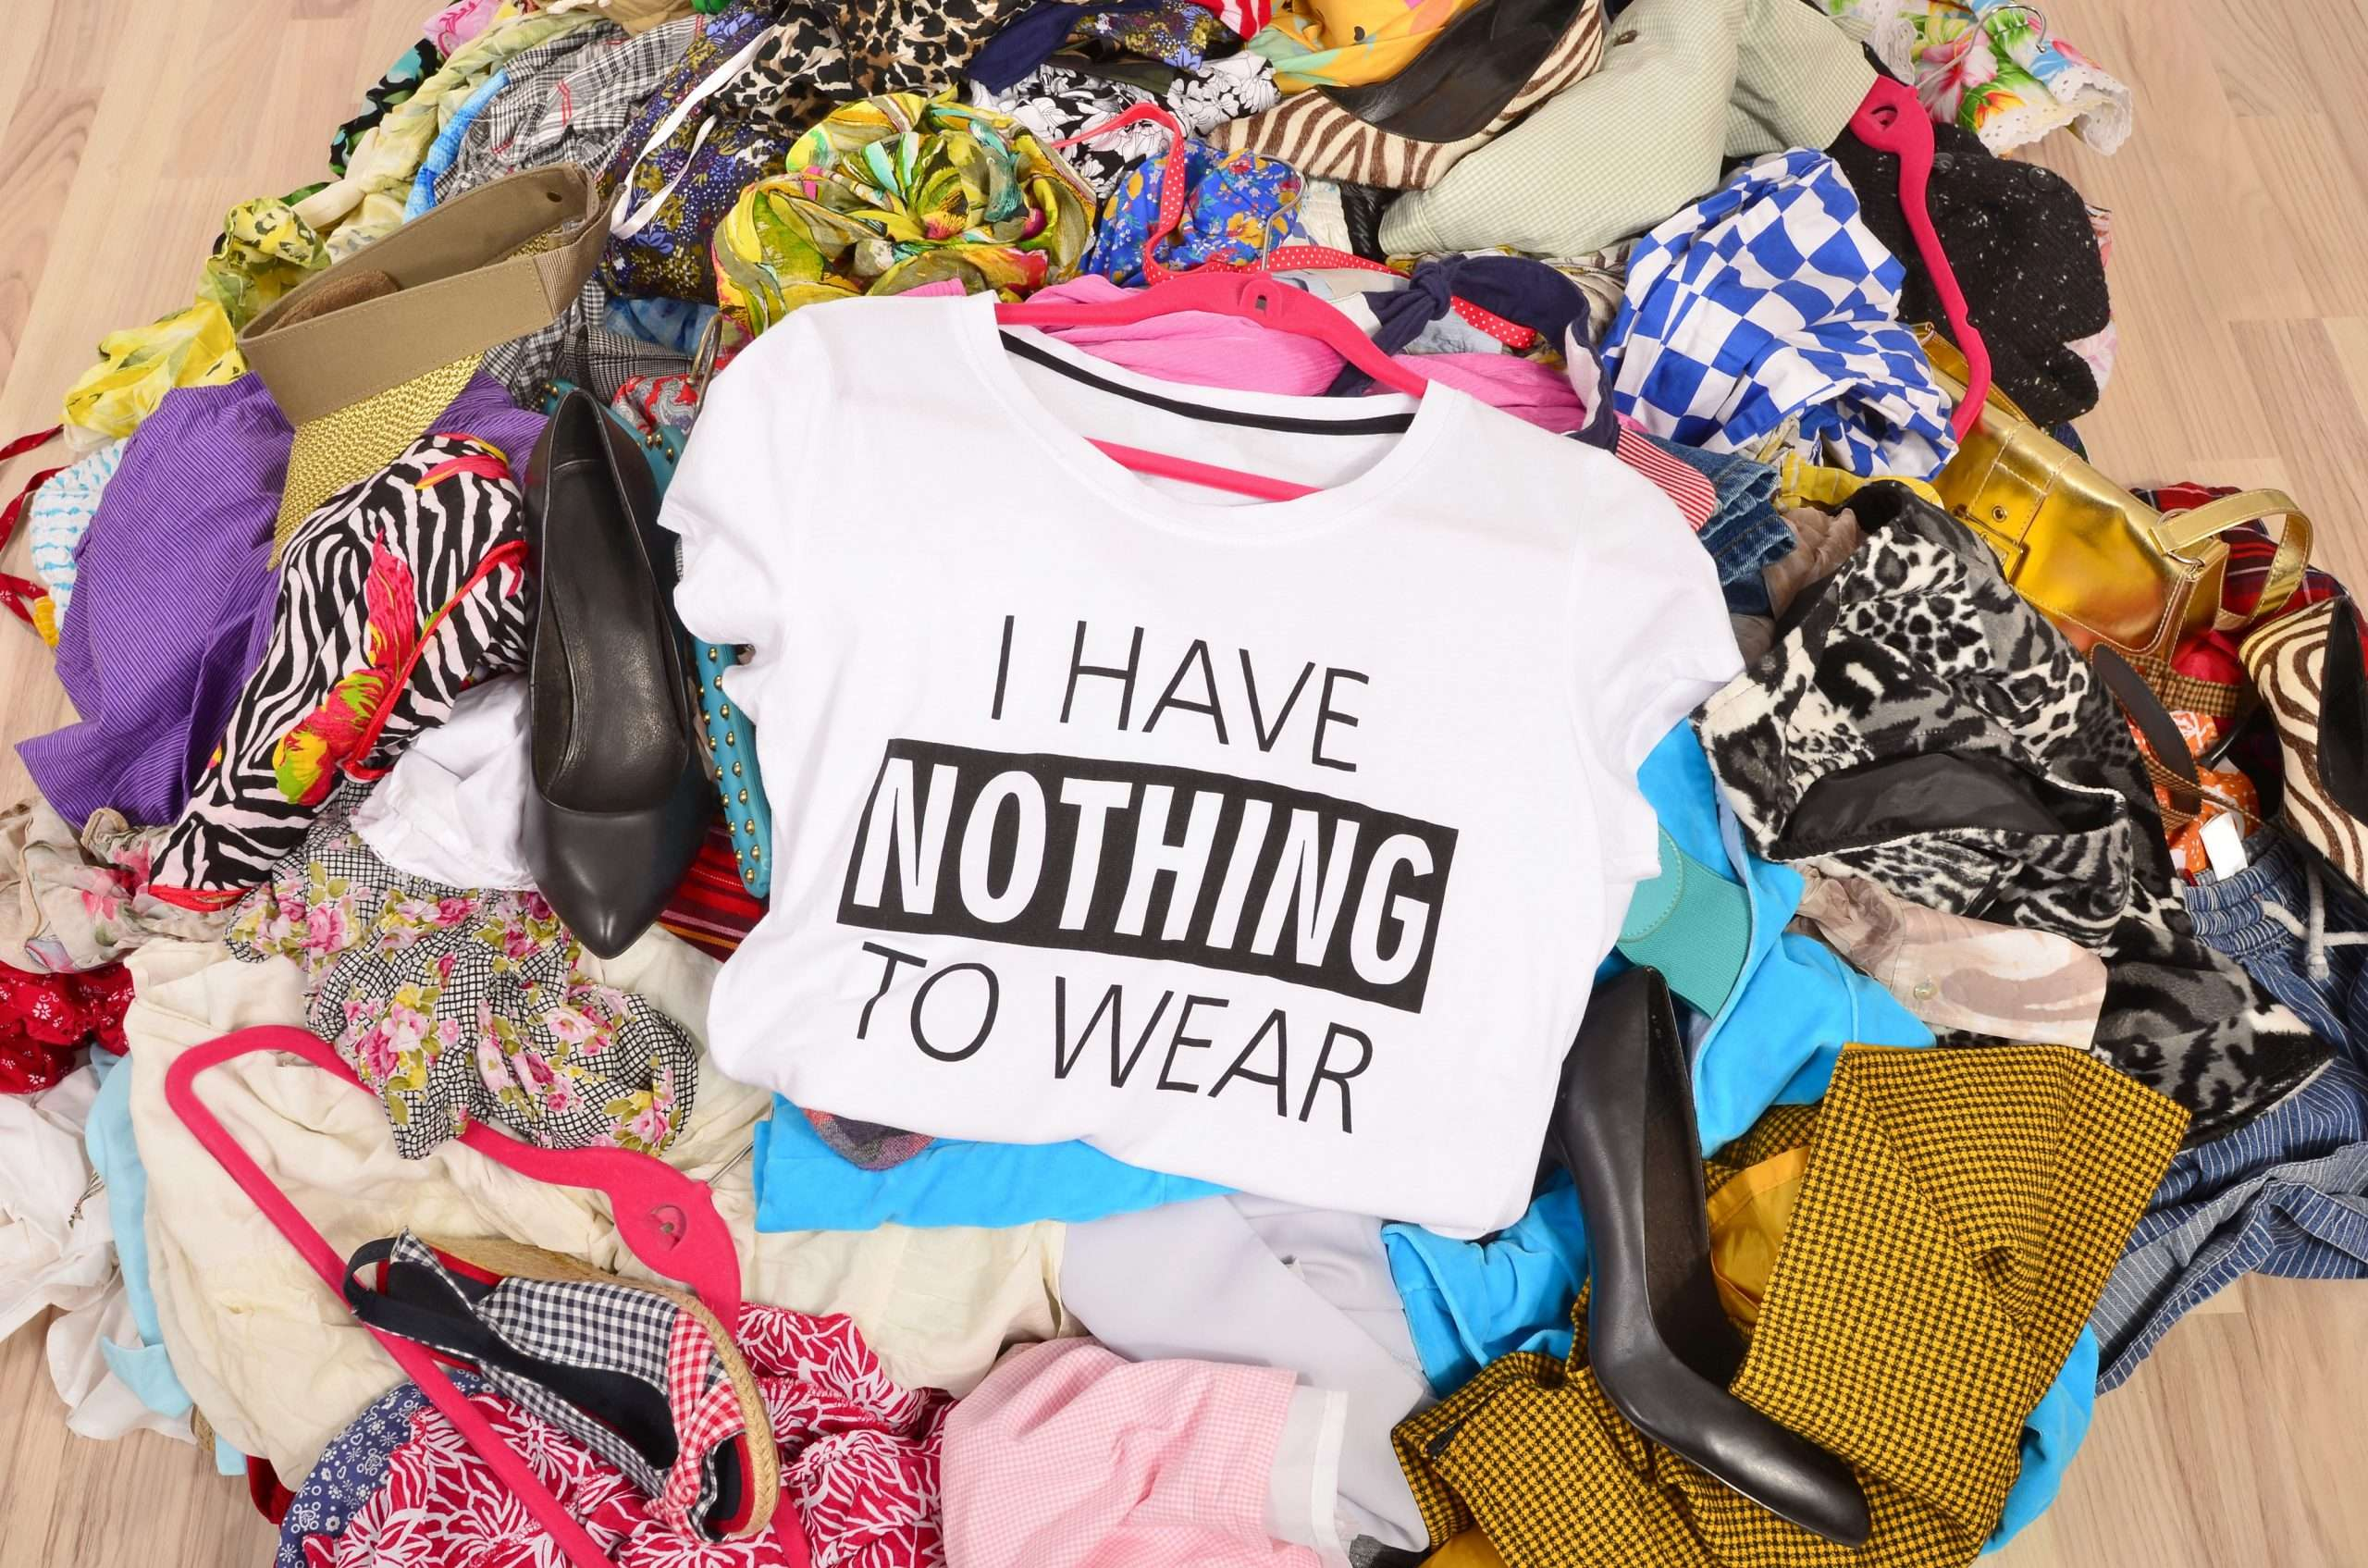 Fast Fashion: What It Is and How It Impacts Our World